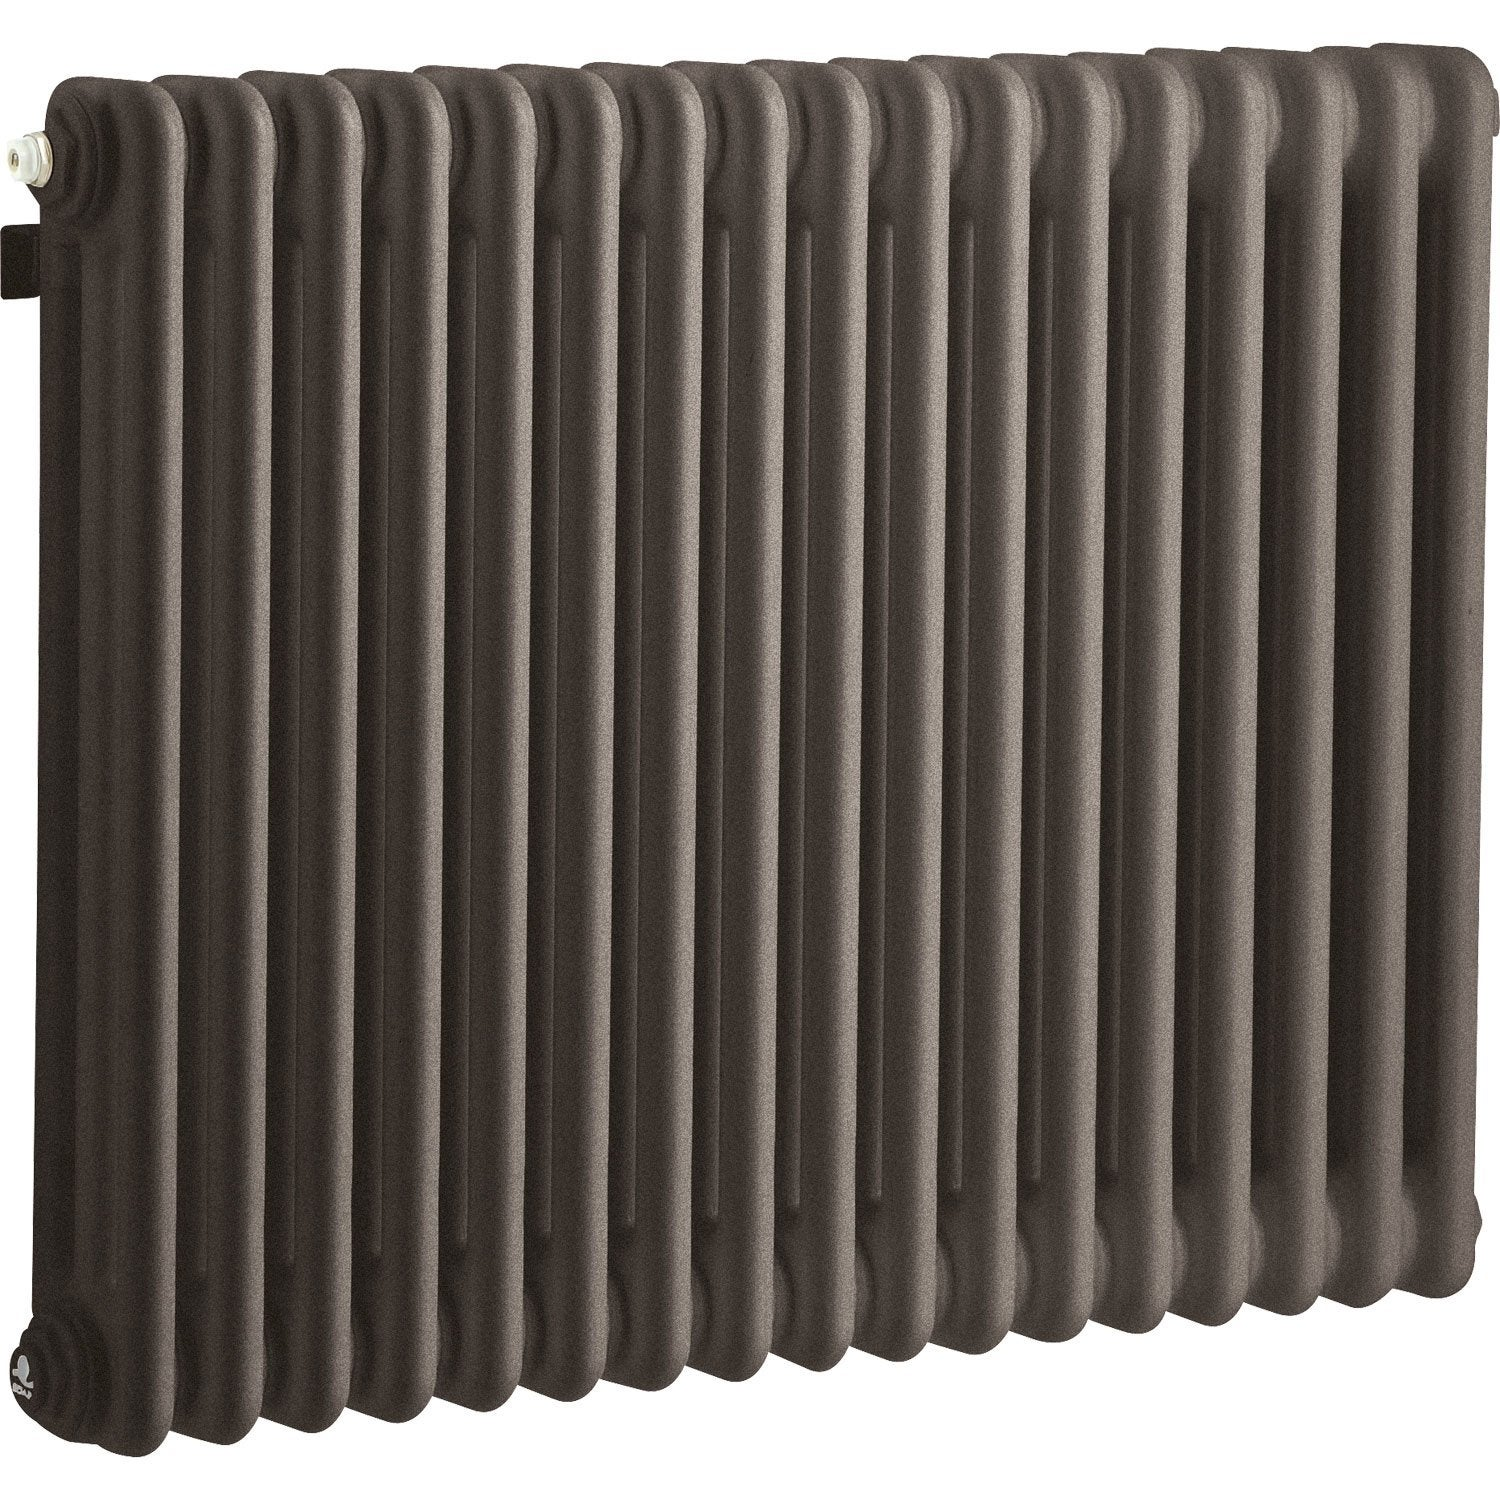 radiateur chauffage central tesi marron cm 1030 w. Black Bedroom Furniture Sets. Home Design Ideas